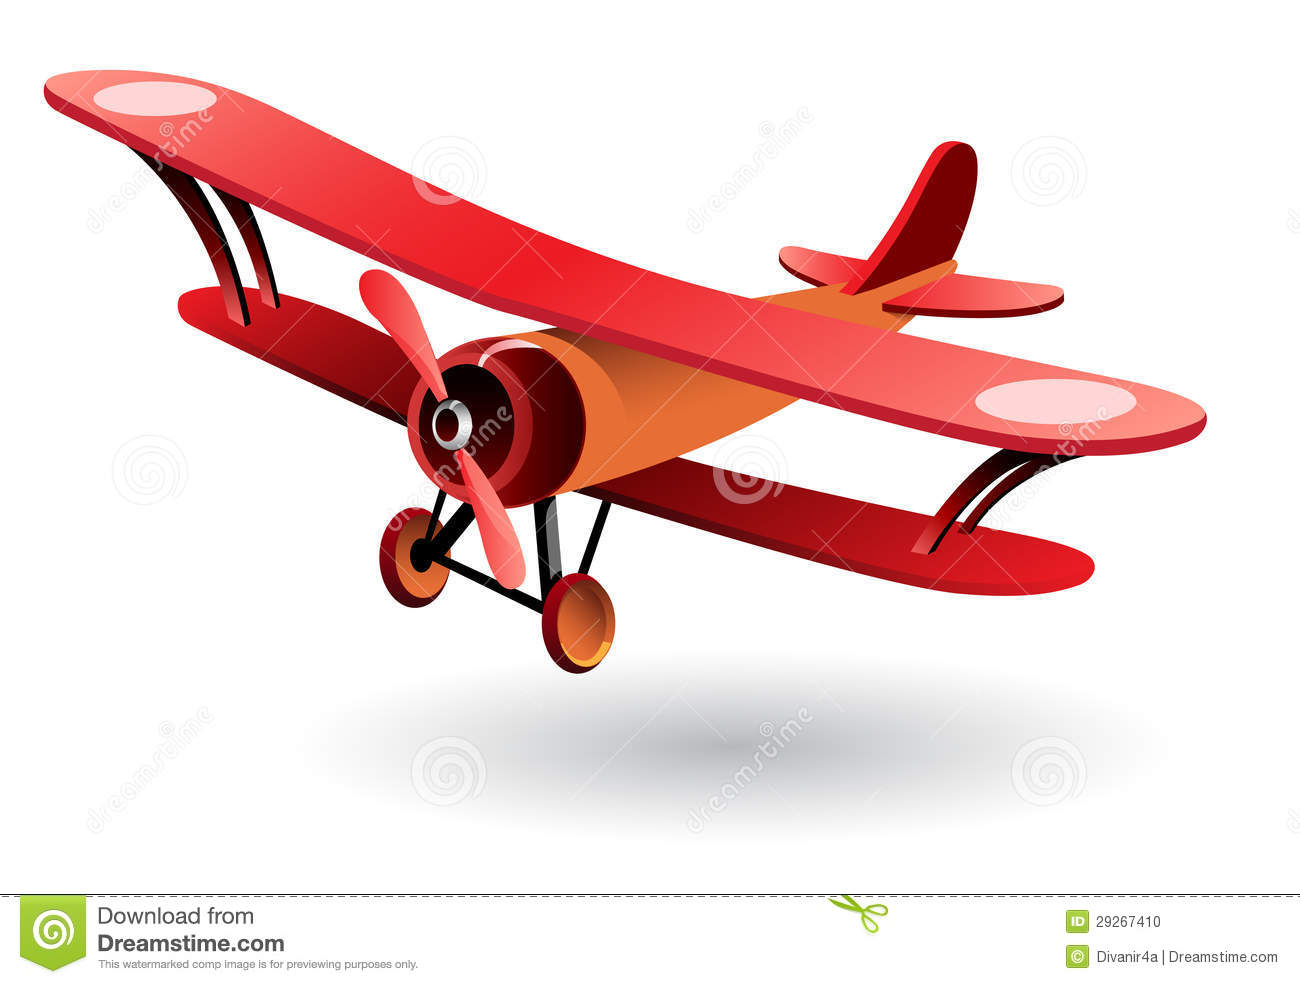 airplane control remote with Stock Photo Vector Old Fashion Biplane Image29267410 on Globe With Airplane Clipart 22501 as well Is Boeing 777 Hiding Invisibility Cloak Lost Black Hole Experts Try Unravel Mystery Malaysia Airlines Missing Aircraft together with Watch furthermore Wooden Model Kits Part 3 4 Part Series likewise Stock Photo Vector Old Fashion Biplane Image29267410.